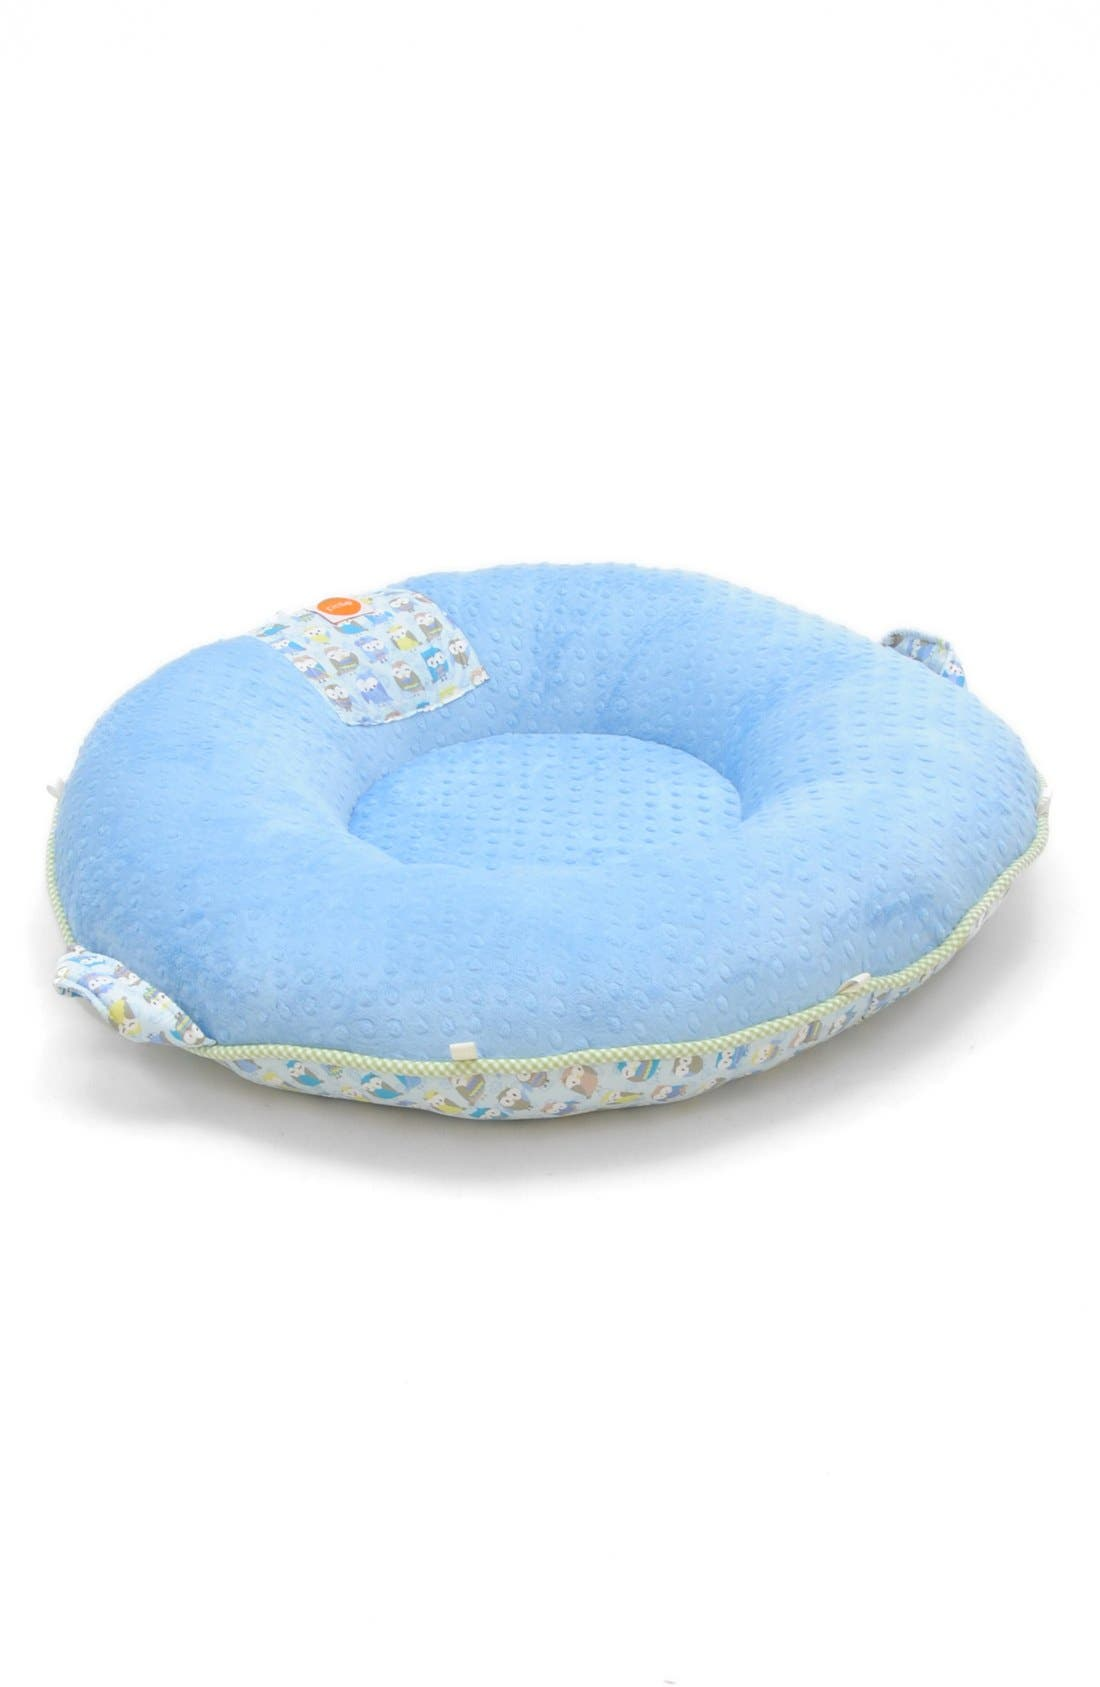 Alternate Image 3  - Pello 'Pello - Hoo Loves Ya Boy' Portable Floor Pillow (Baby)